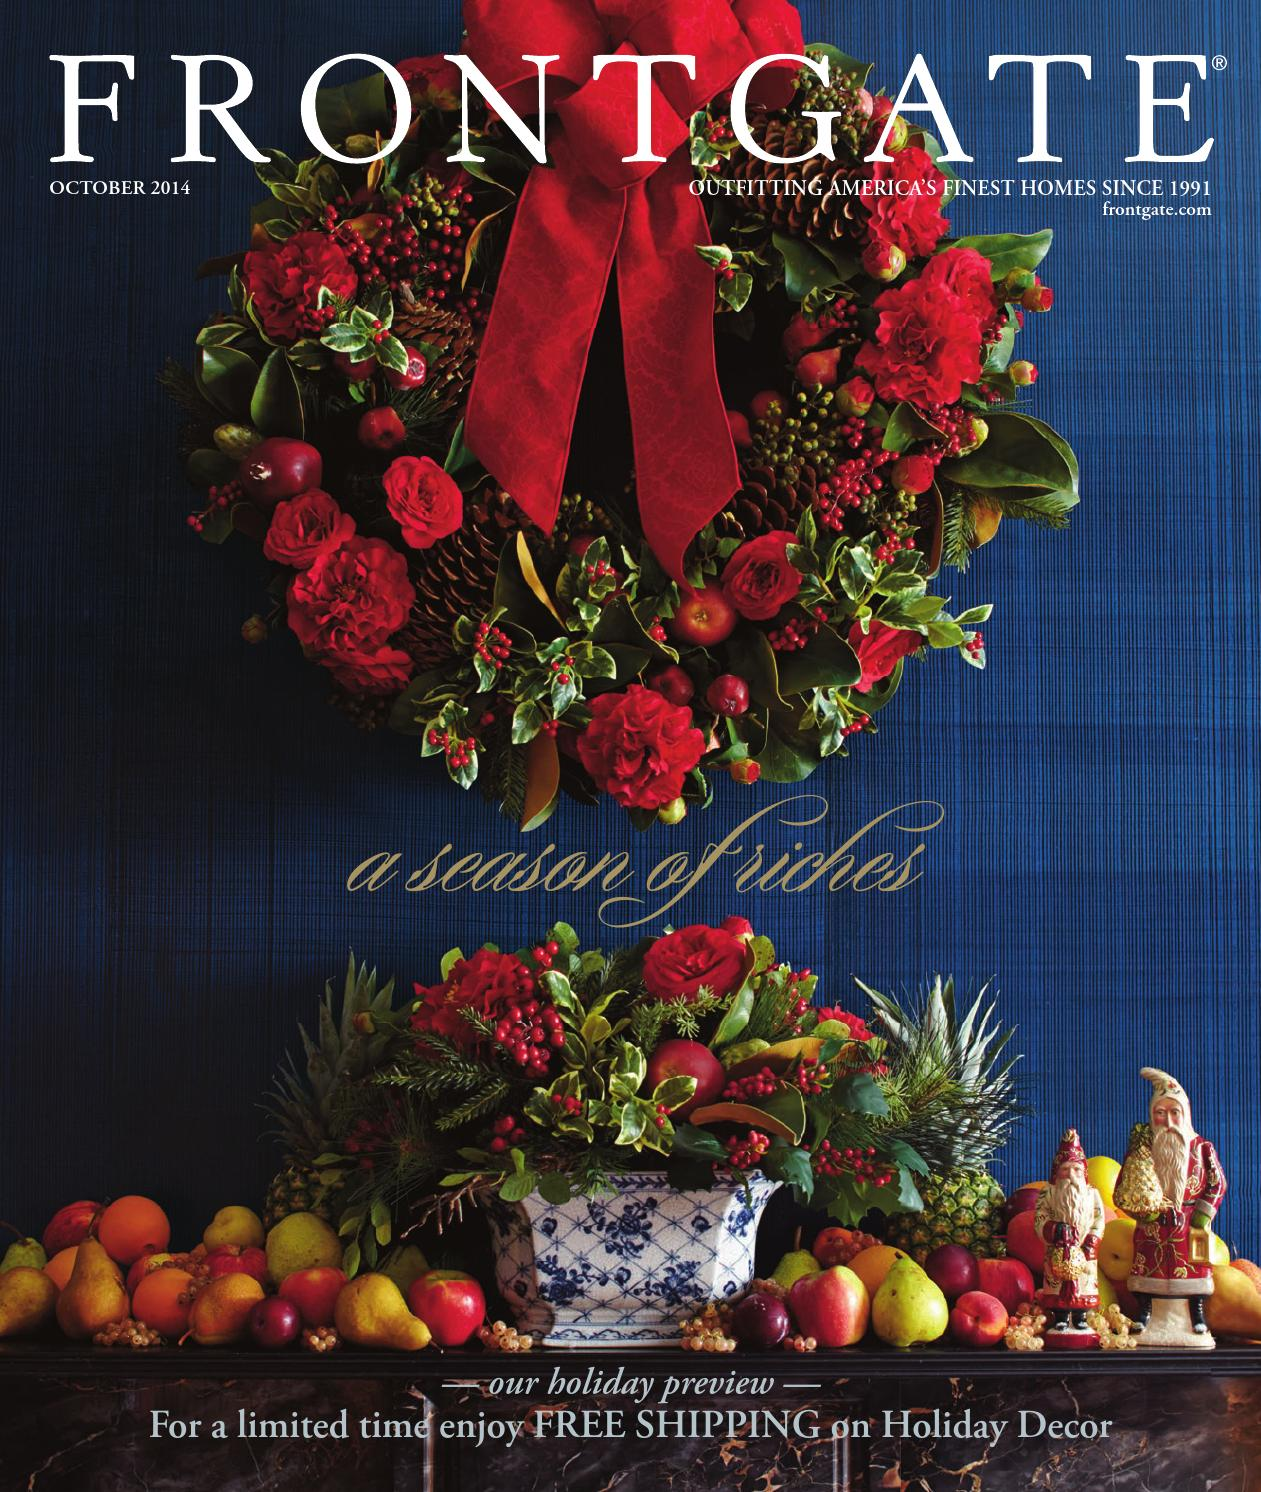 Frontgate October 2014 catalog by Amy Howell Hirt - issuu